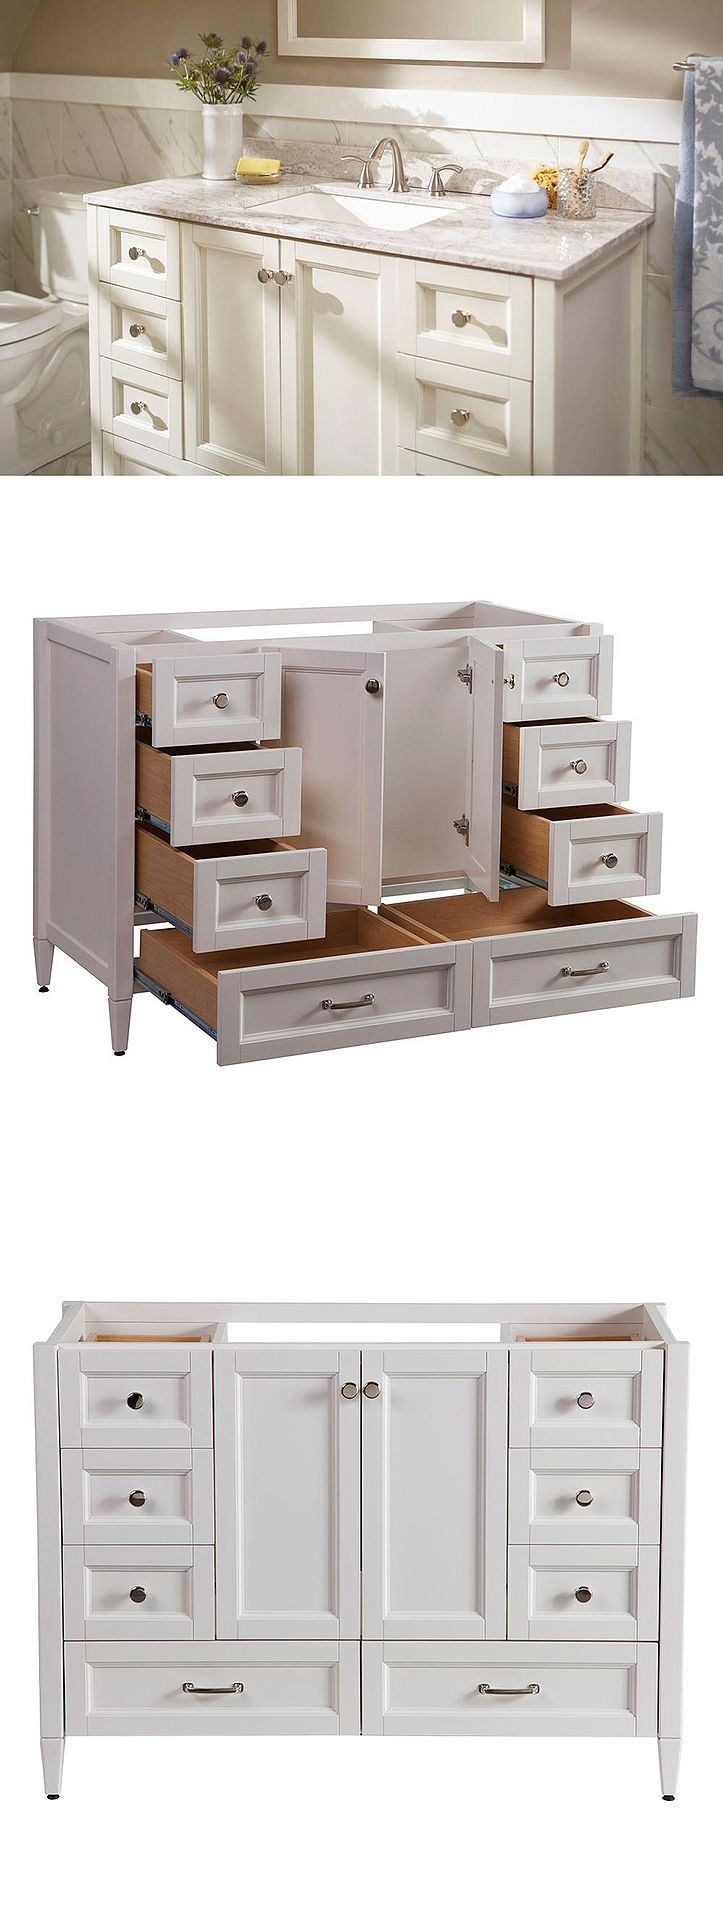 Look at all the storage this bathroom vanity provides. The Claxby features six working drawers and two large bottom drawers that provide ample storage for all of your bath essentials. It's finished in a beautiful cream color and accented with chrome cabinet hardware for an elegant look.